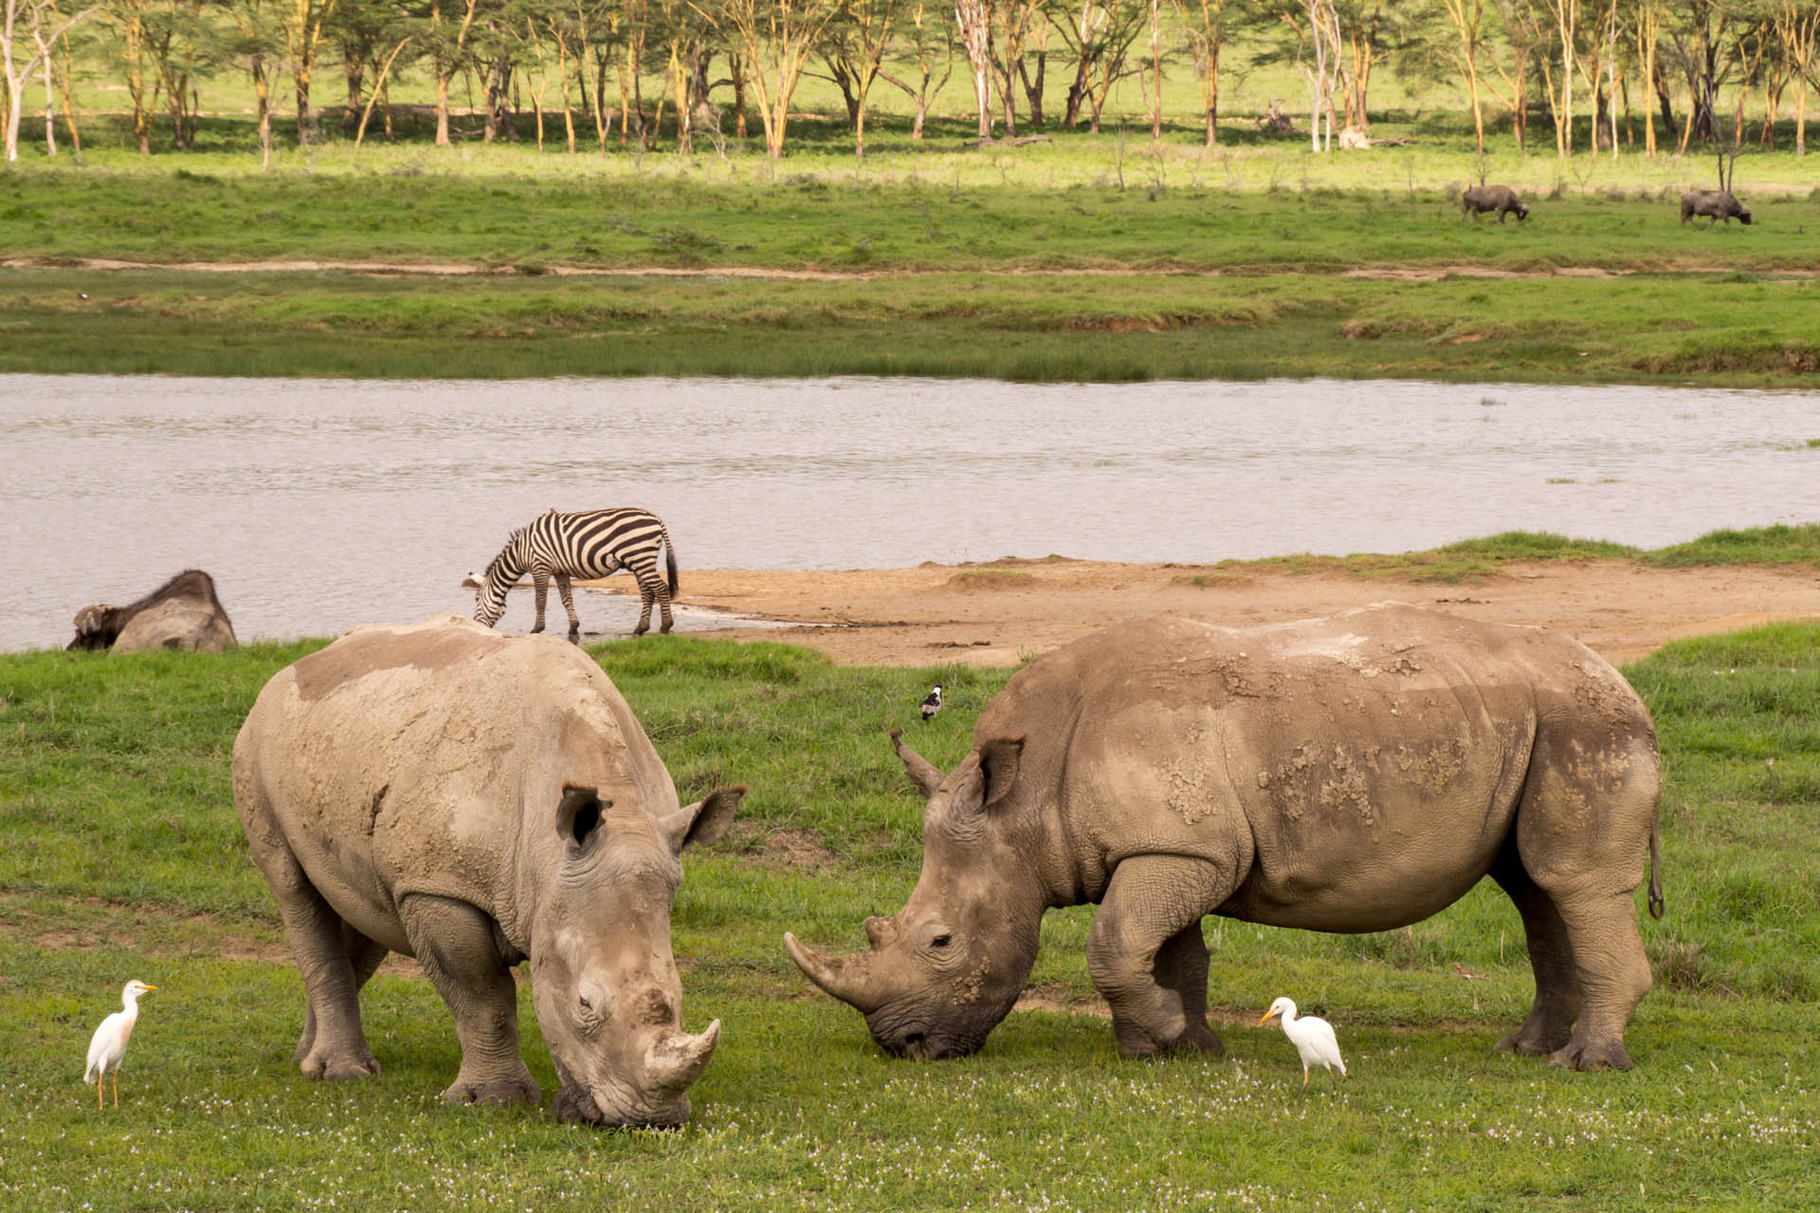 Rhinos [Lake-Nakuru-Nationalpark, Kenya, 2015]